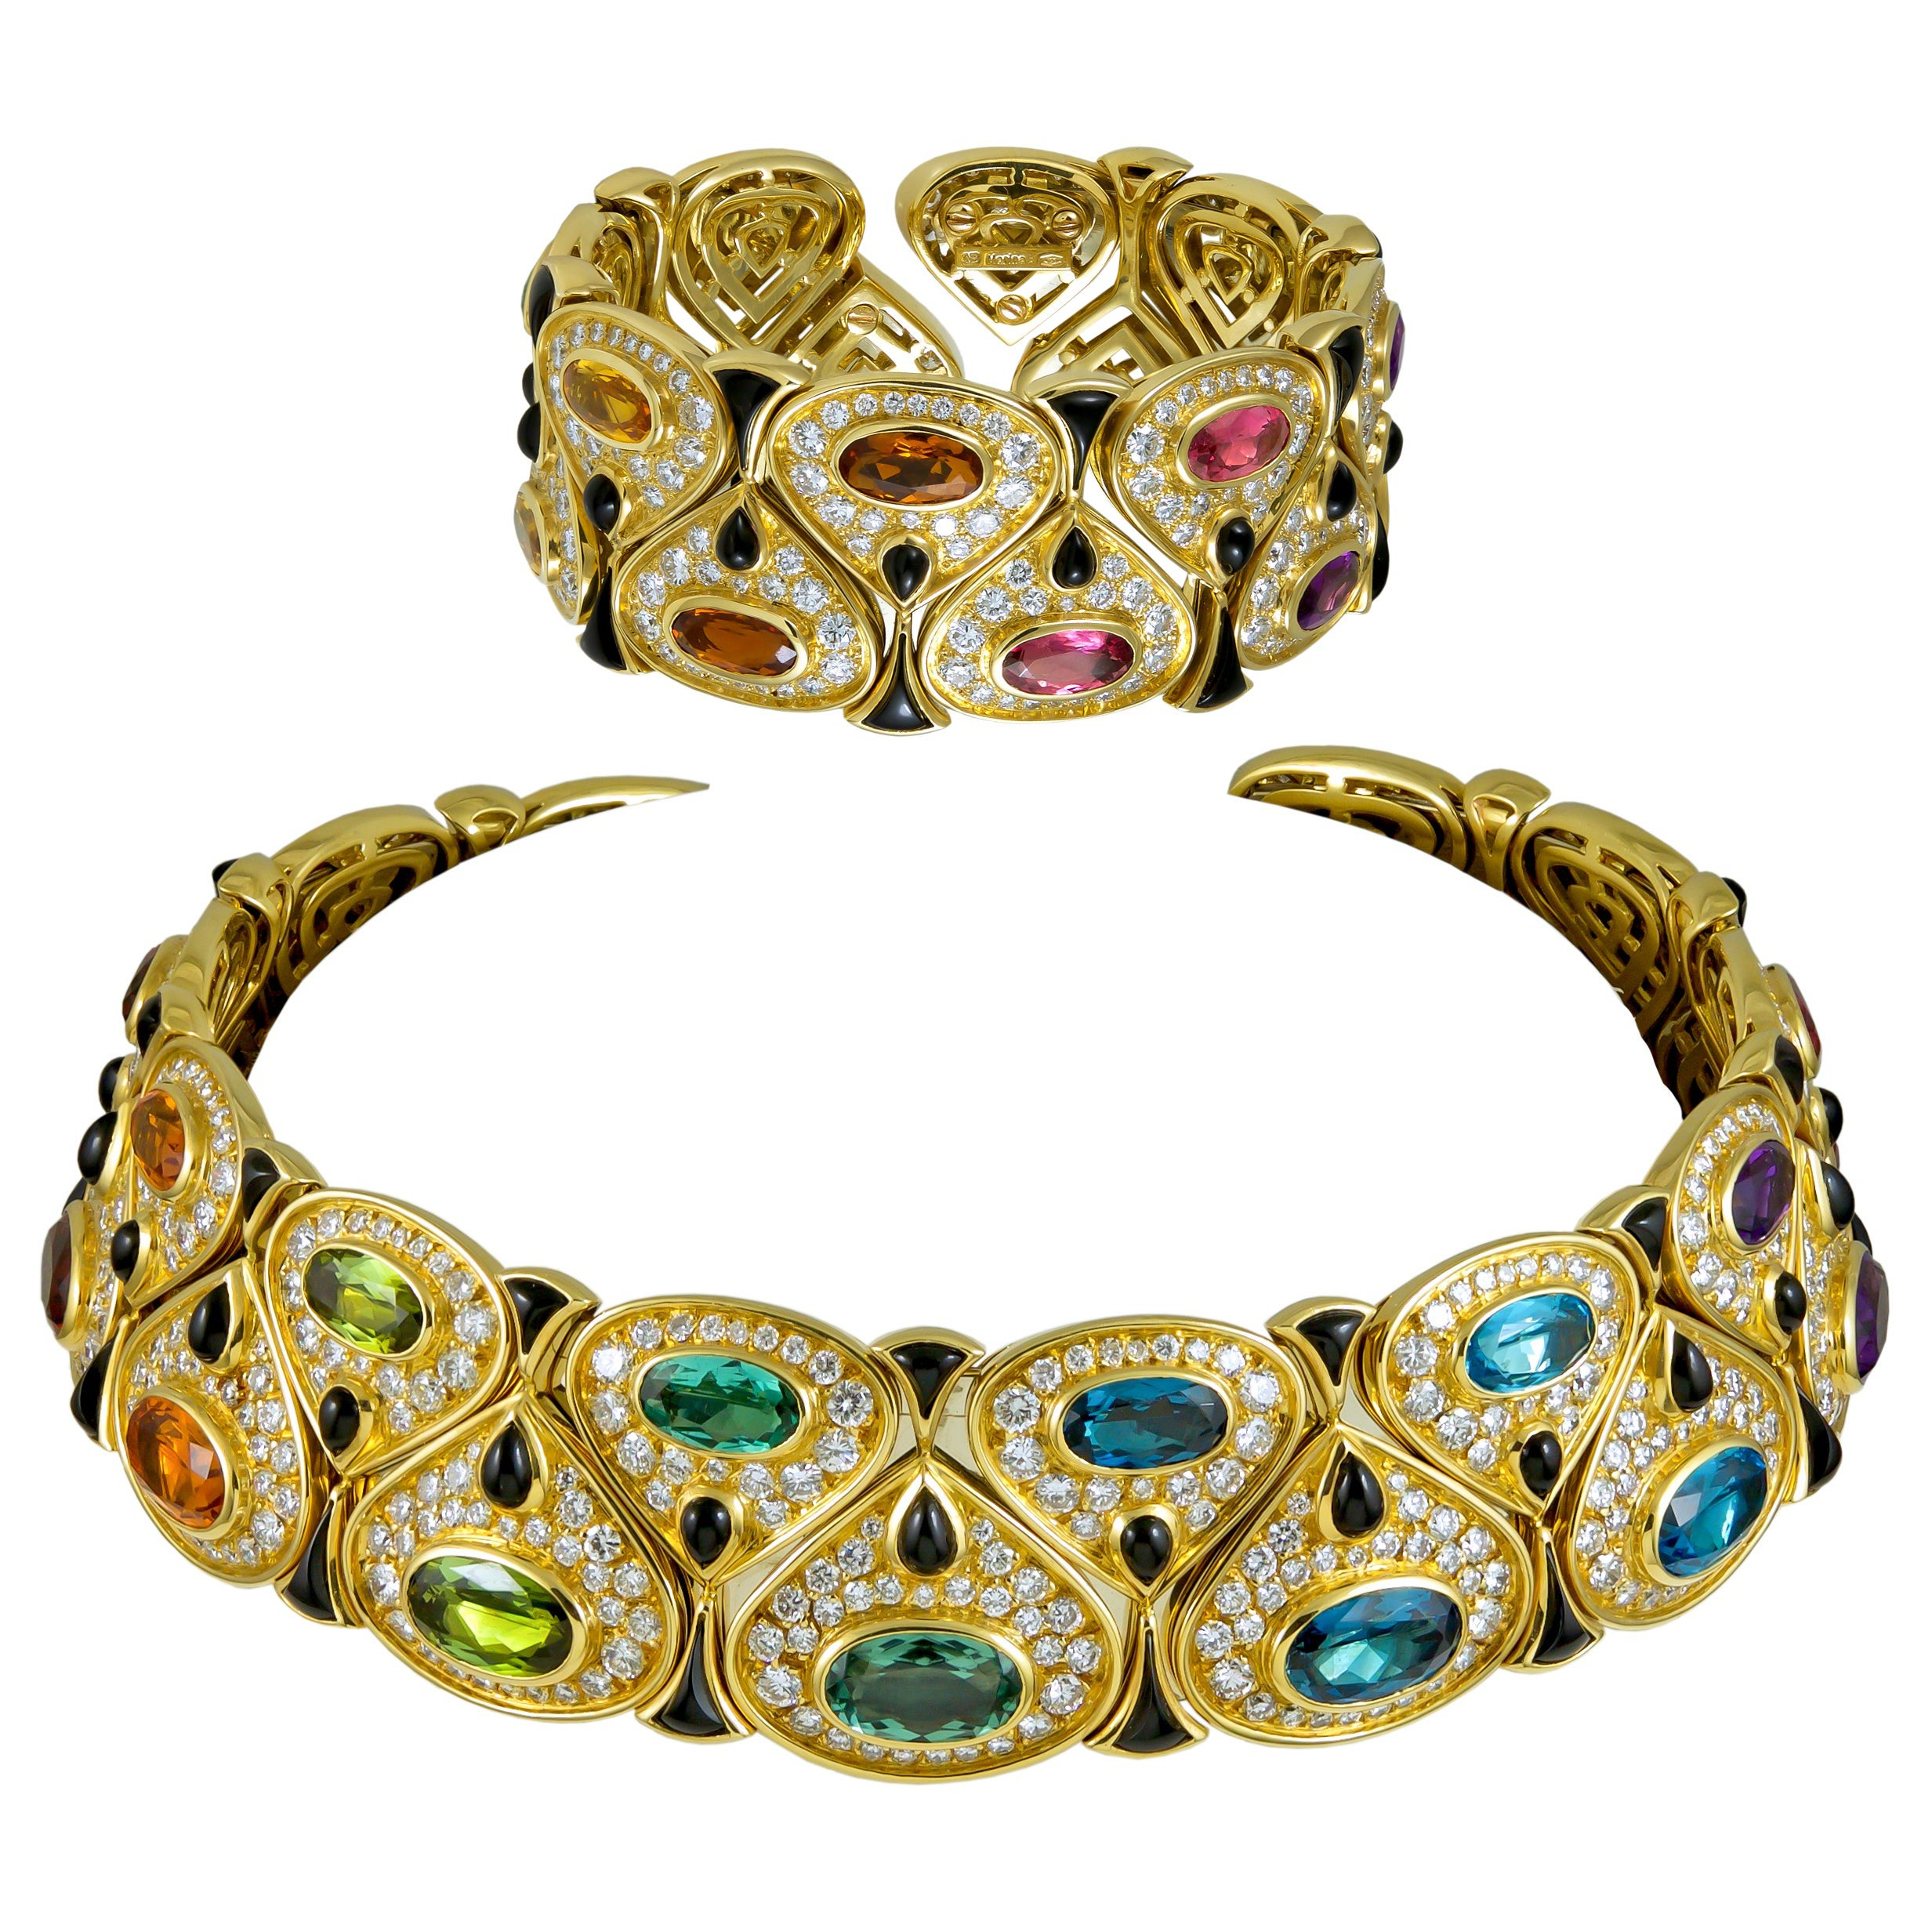 Marina B Cristina Multicolor and Yellow Gold Collar Necklace Bracelet Suite